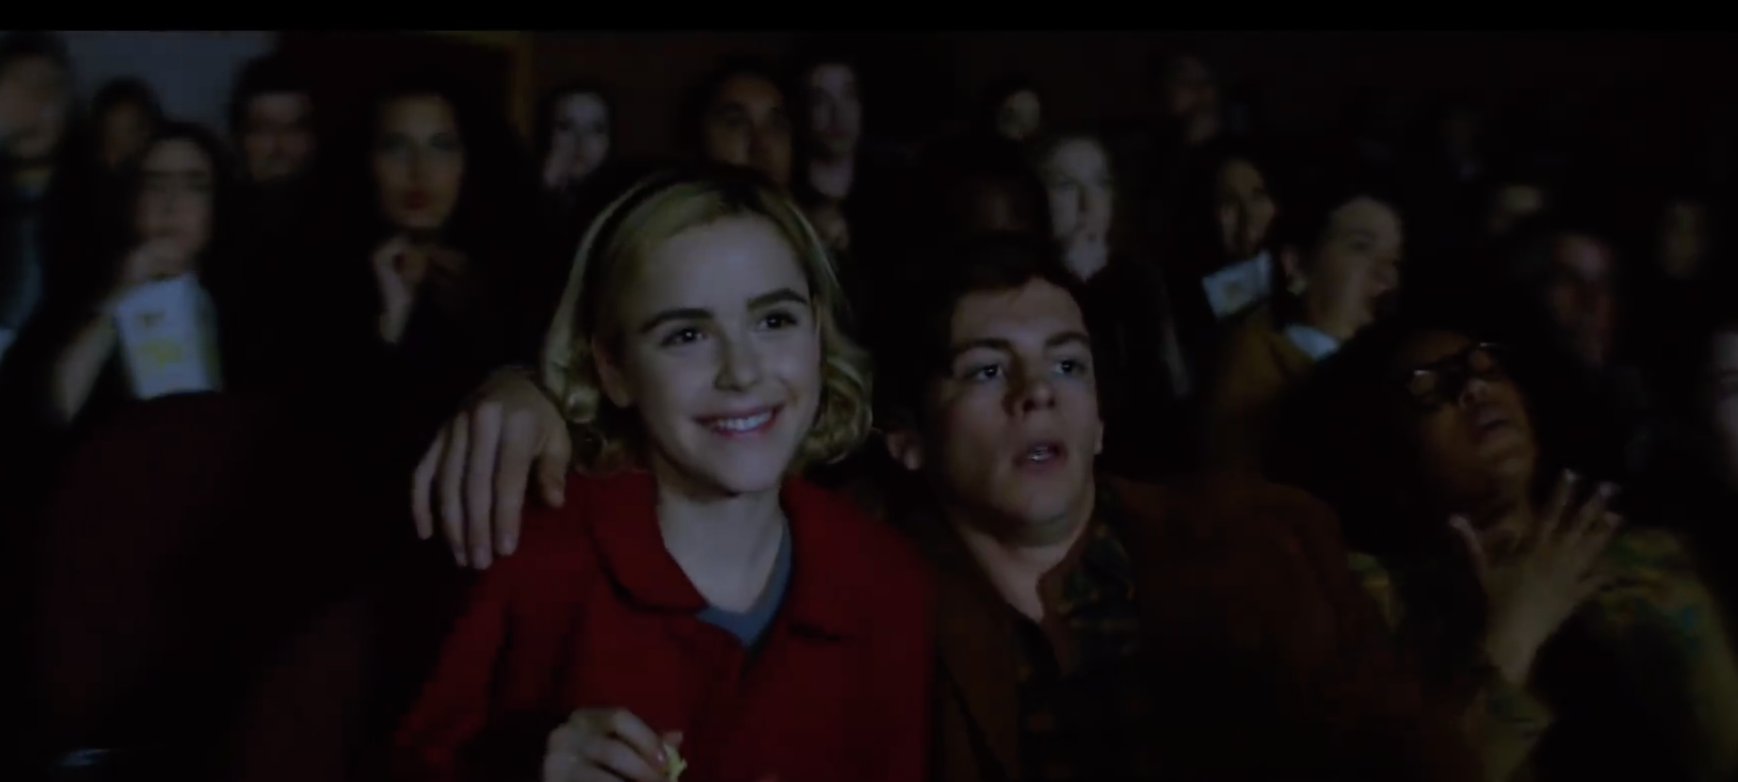 Netflix Show 'The Chilling Adventures Of Sabrina' Cancelled